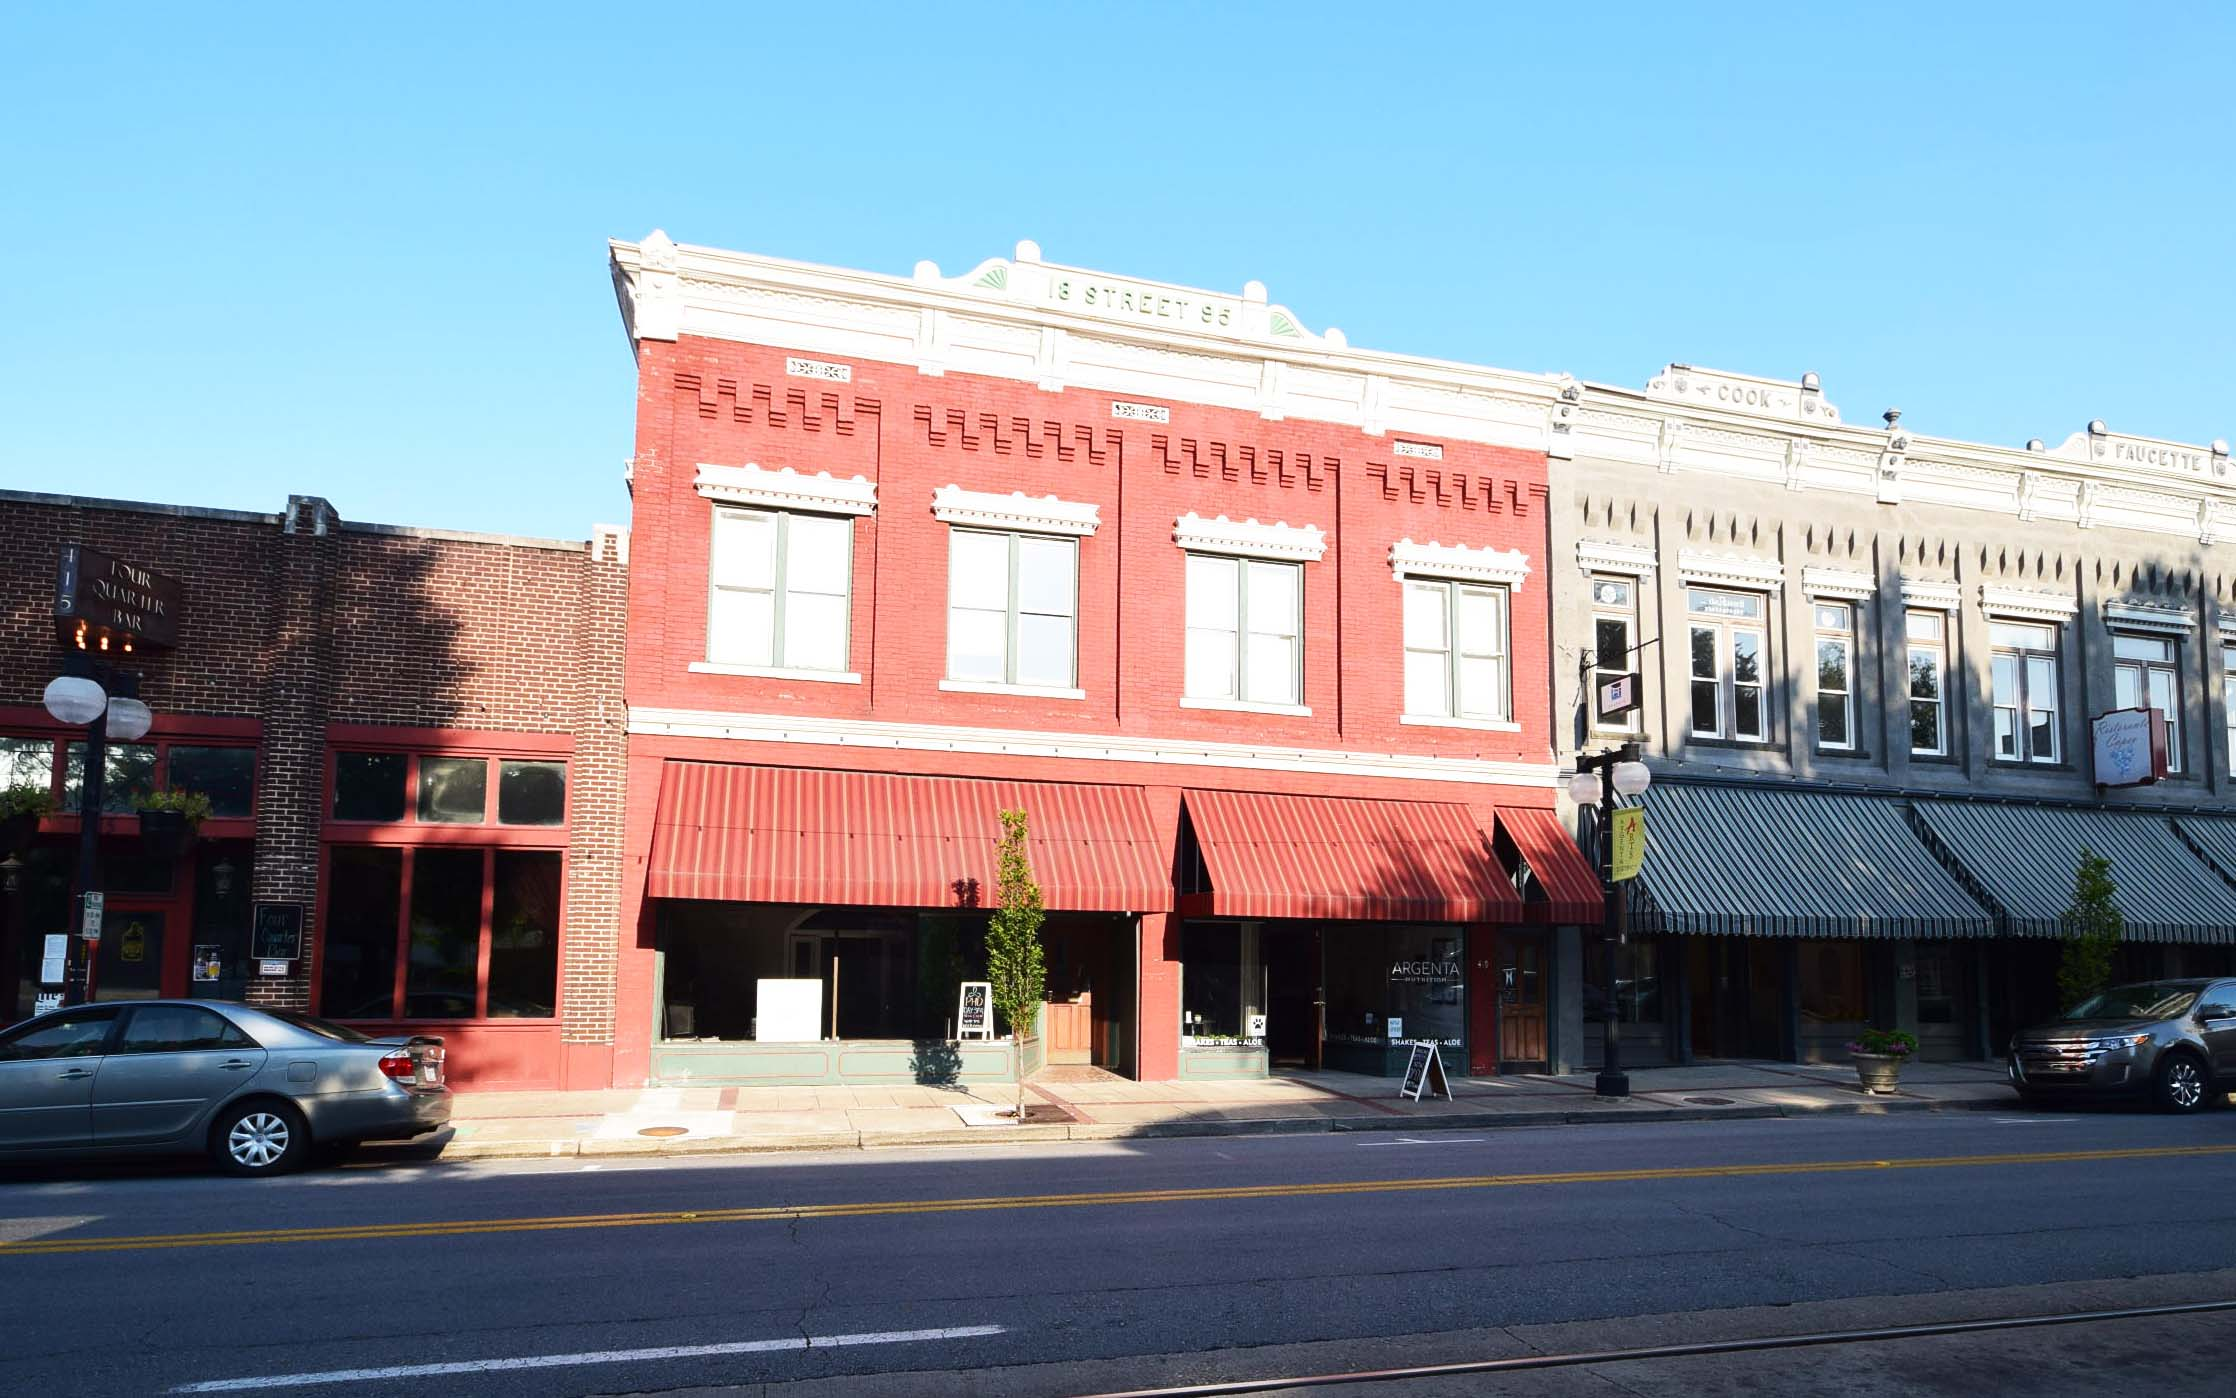 The building at 417-419 Main Street in Argenta is now at full capacity.